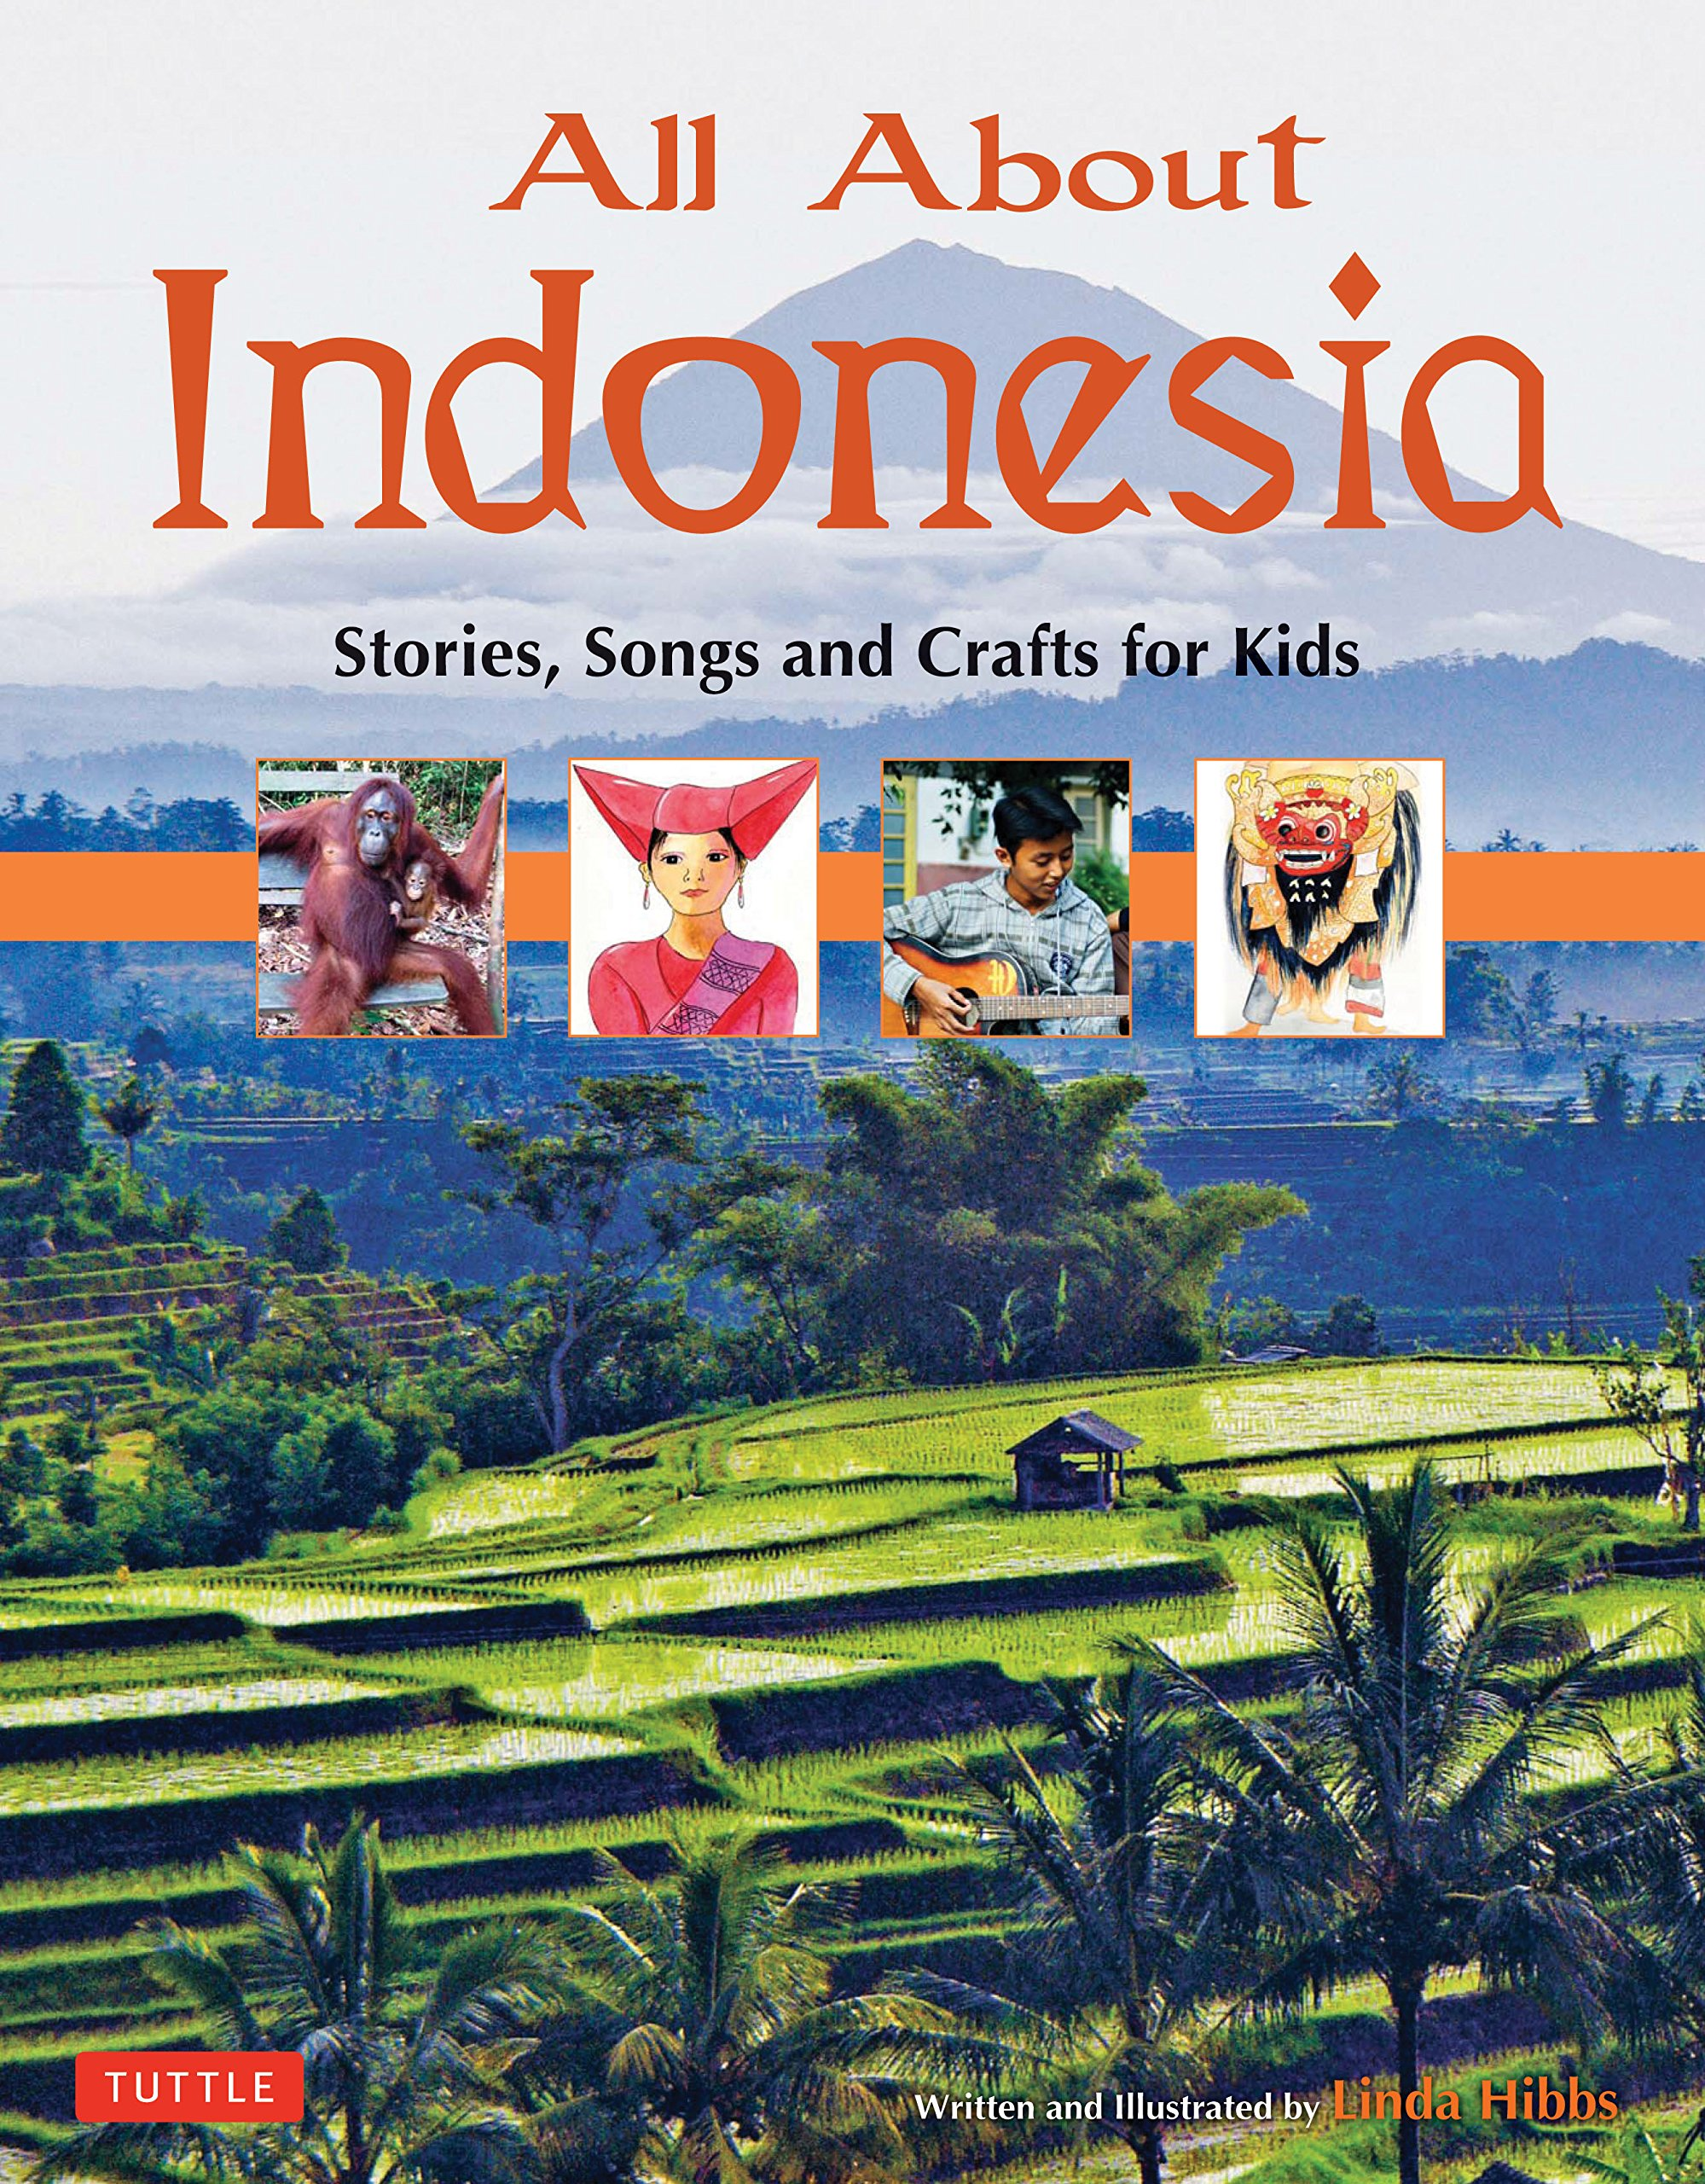 All About Indonesia: Stories Songs and Crafts for Kids (All About...countries)